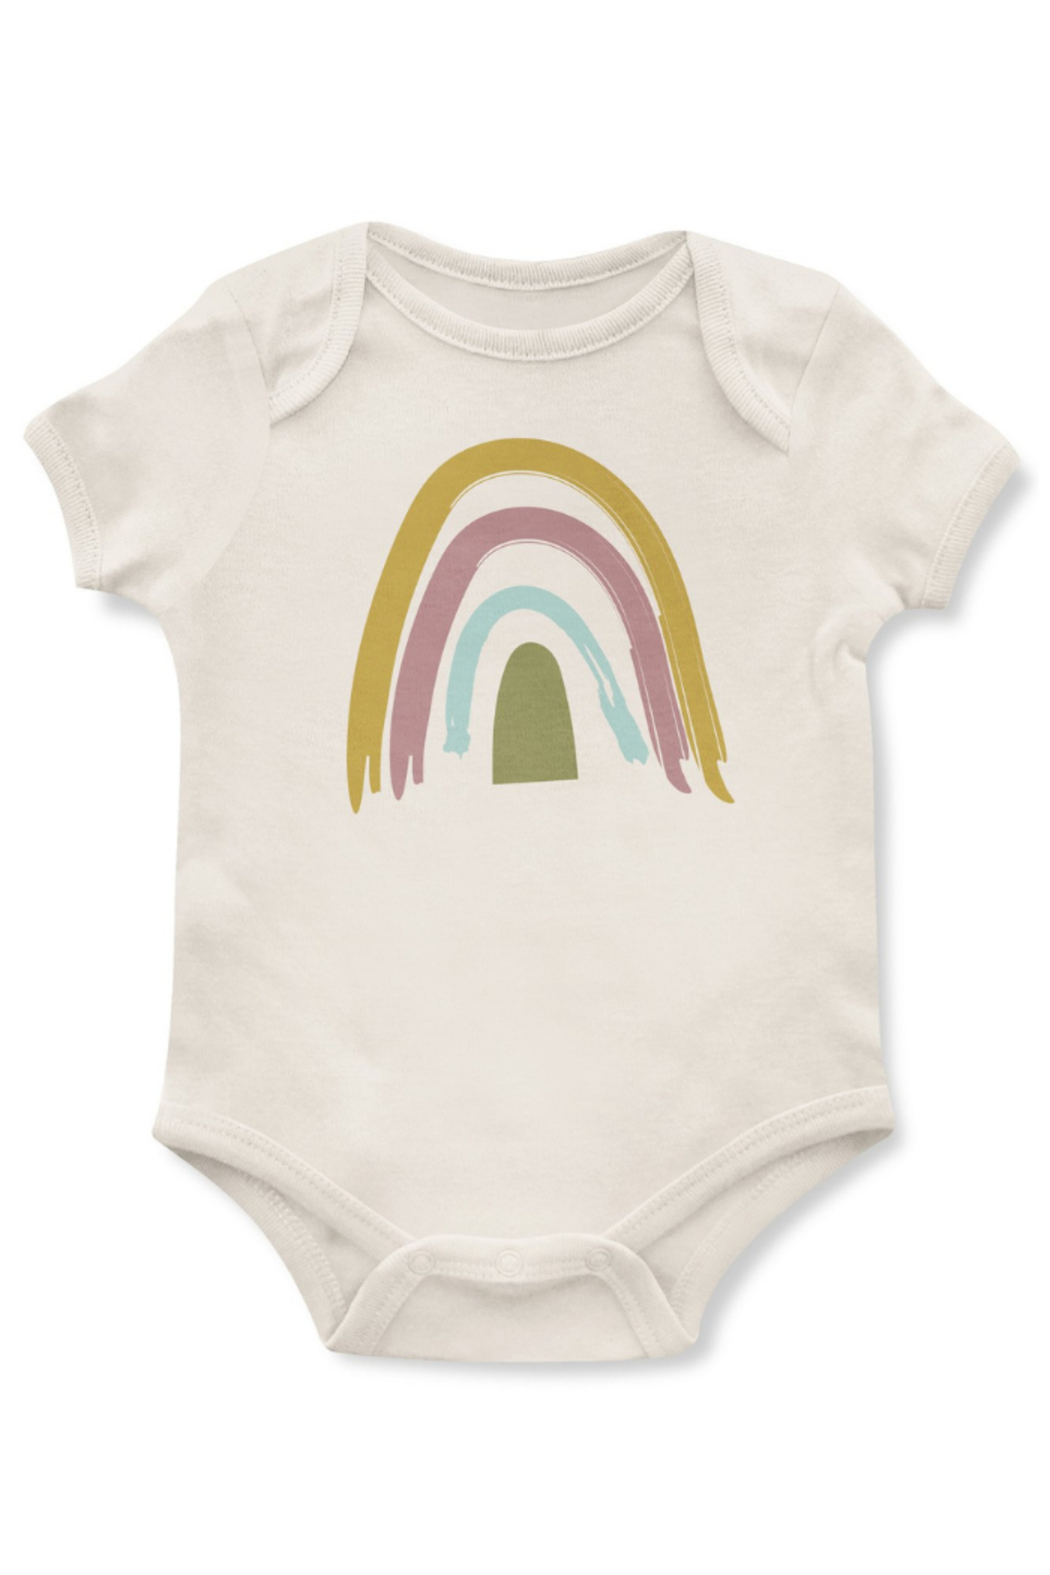 Emerson & Friends Neutral Rainbow Onesie - Front Cropped Image